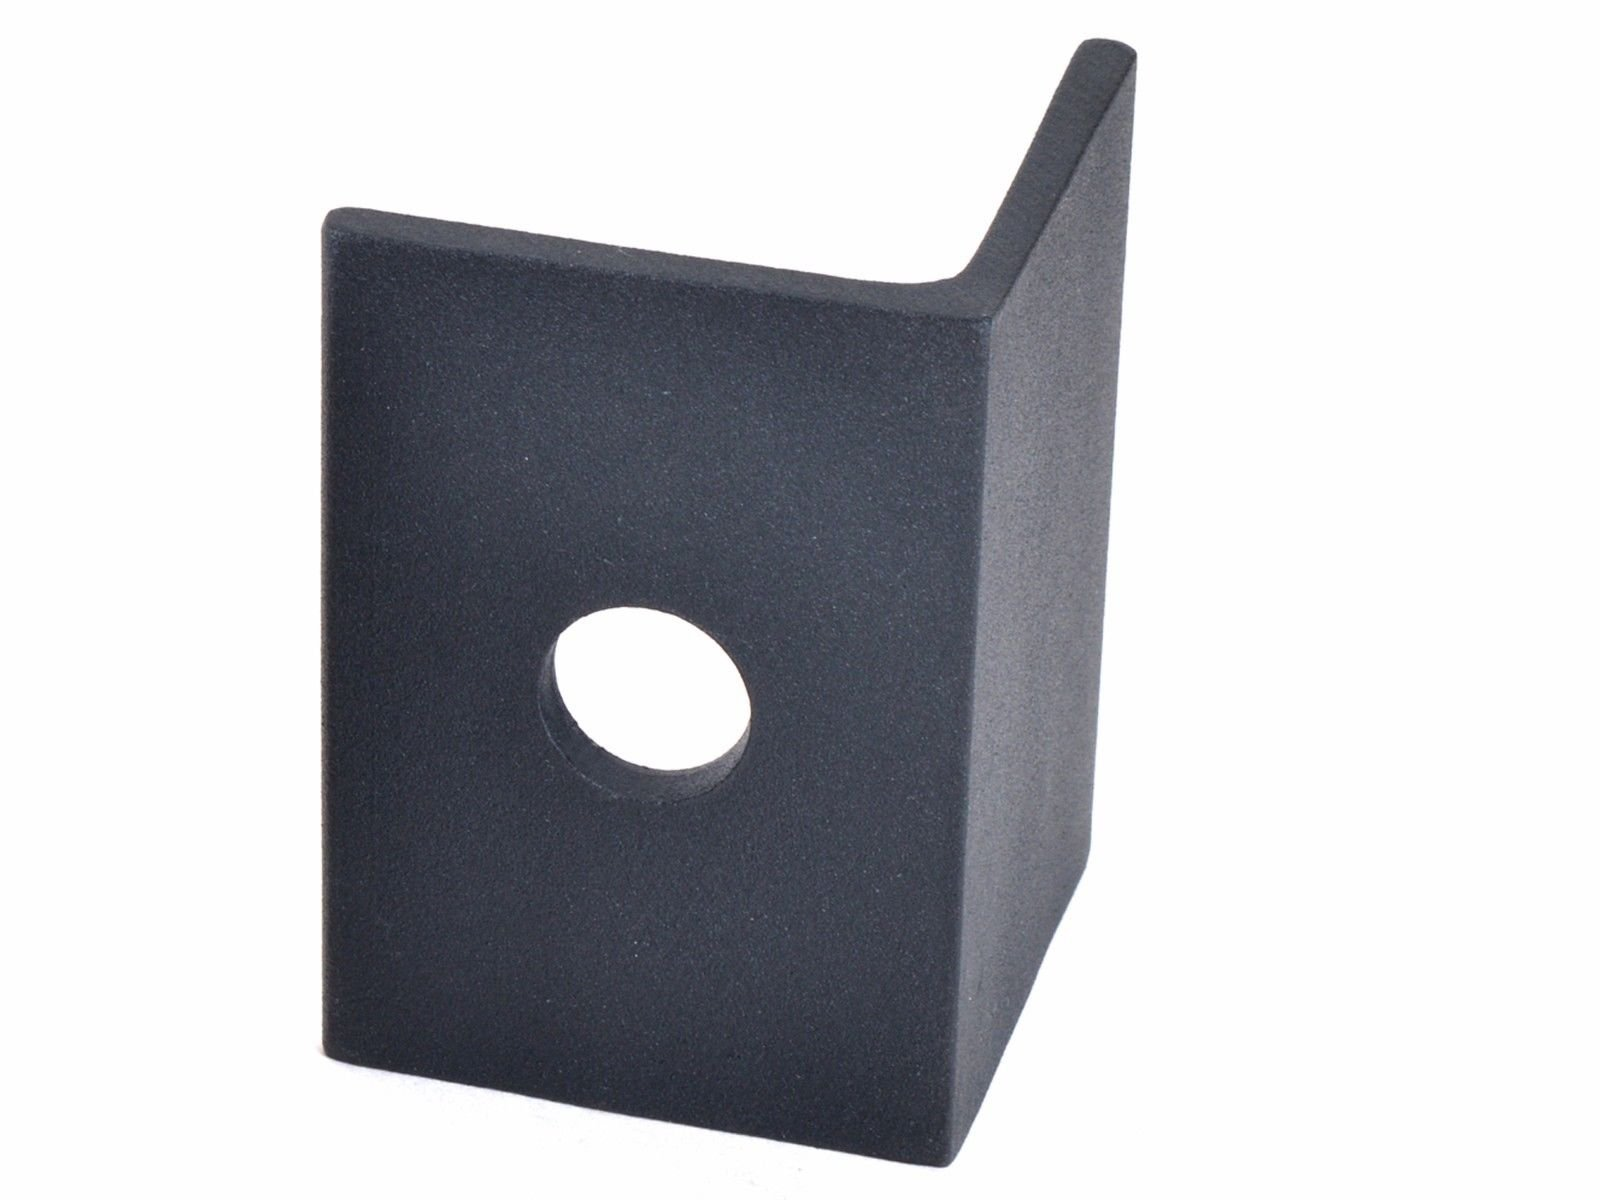 Black Door Stop Hardware Replacement For Heavy Duty 800LB Barn Sliding Door Part